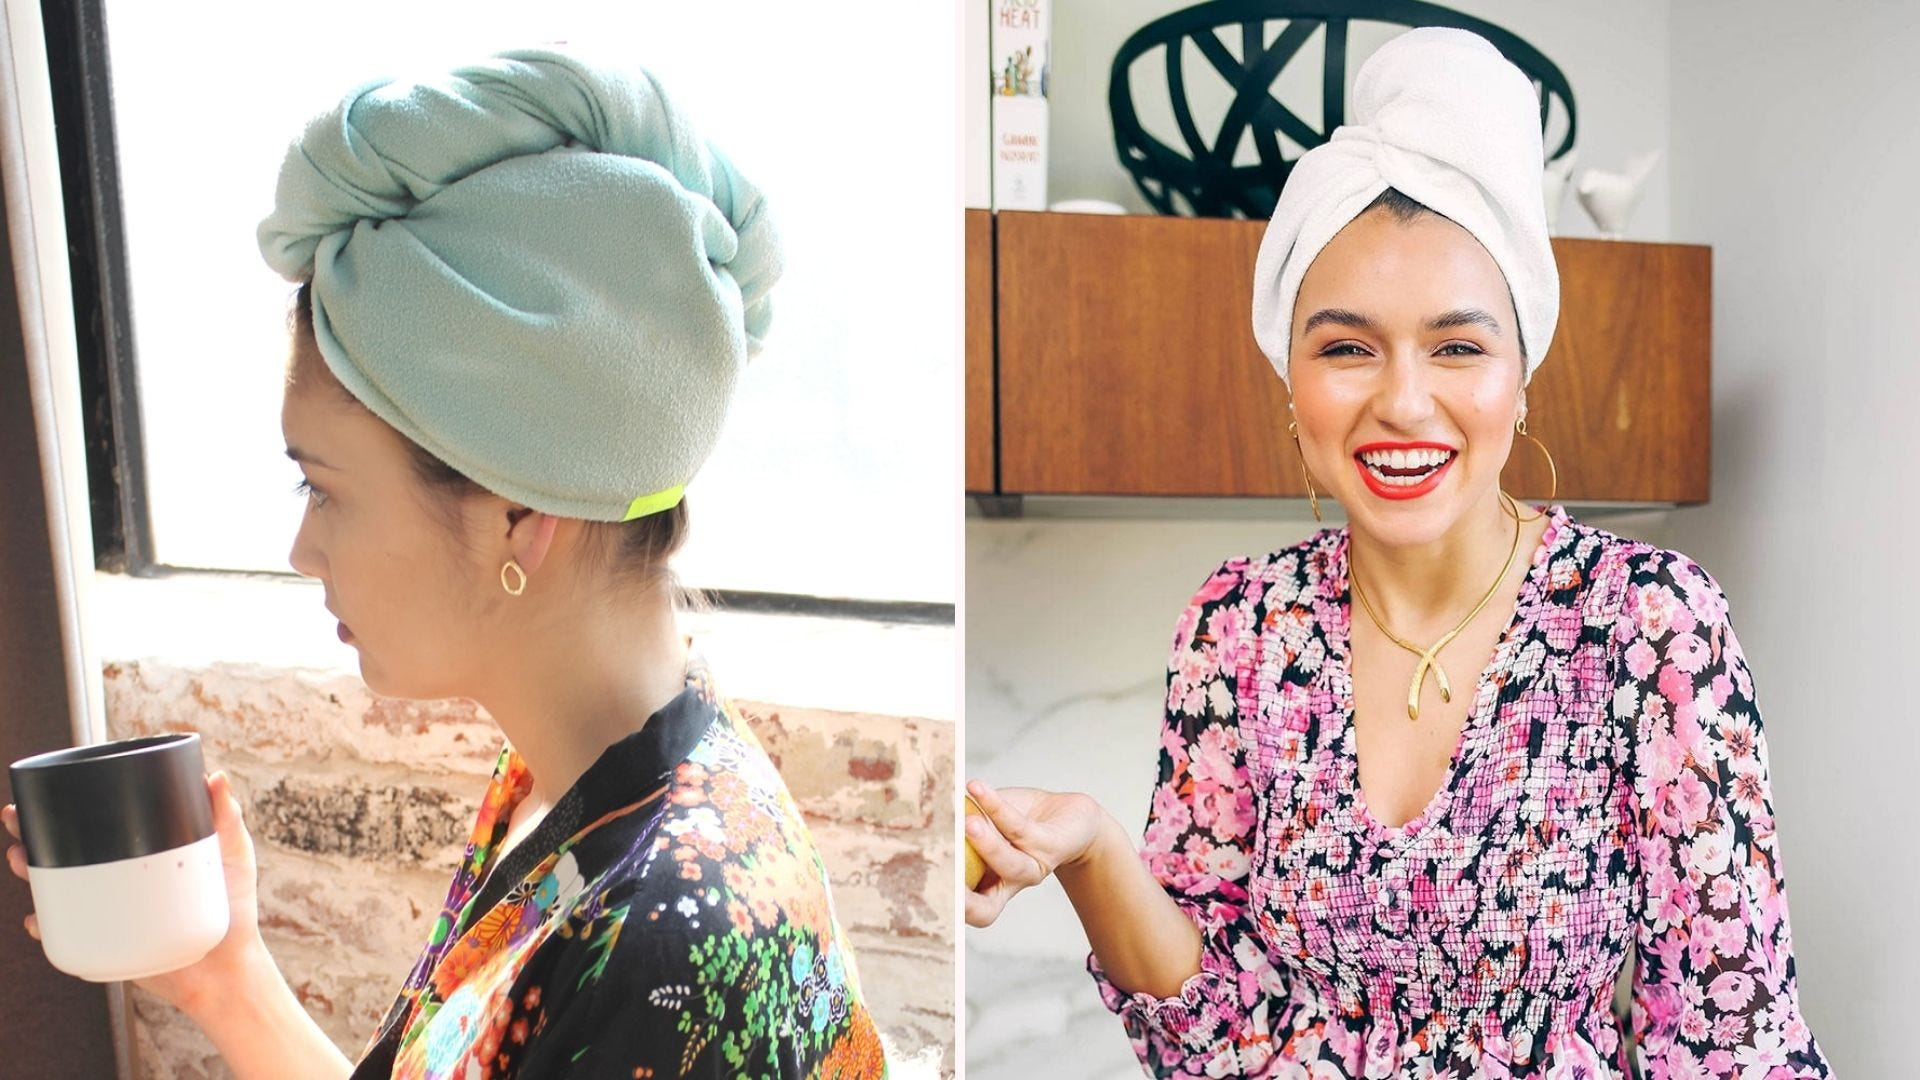 Women wearing microfiber drying turbans to protect their hair from towel damage.